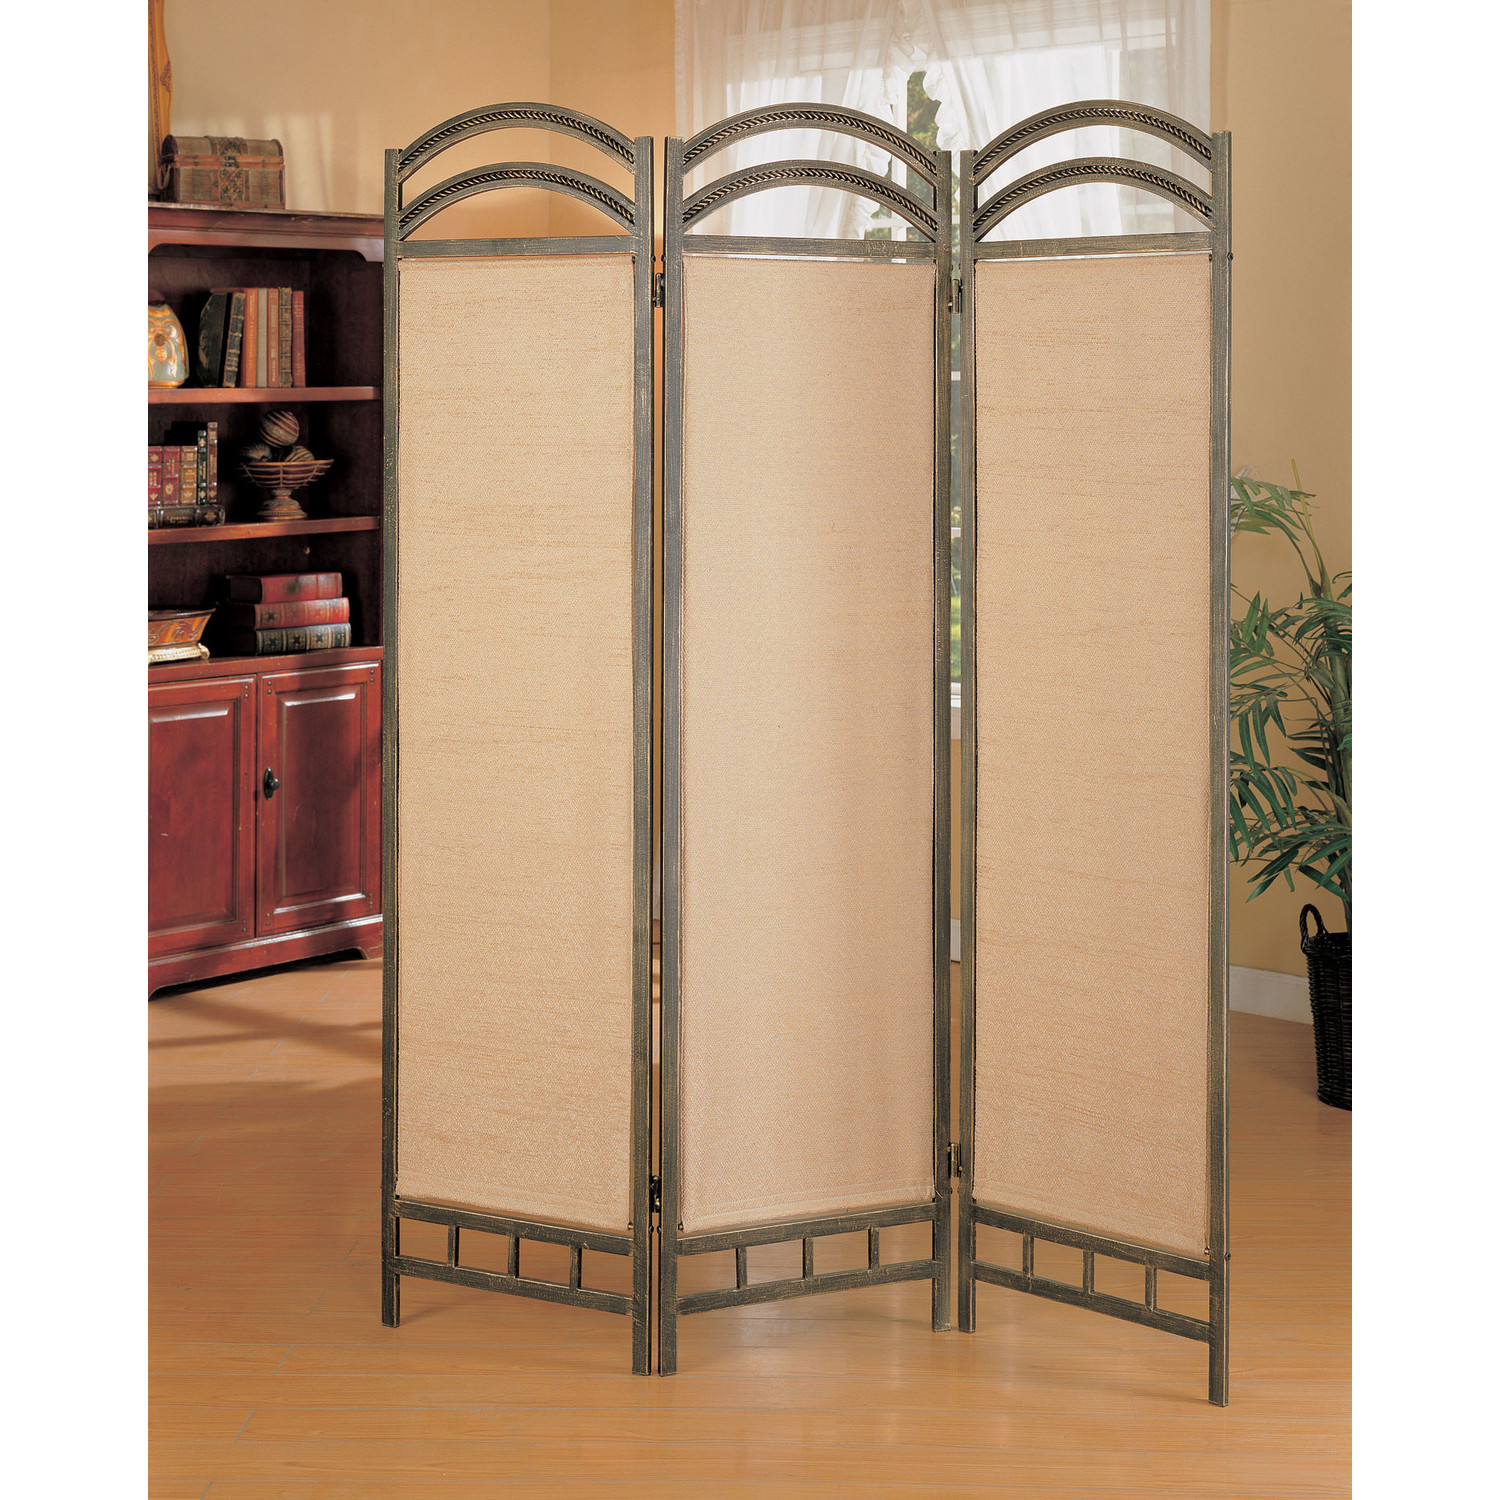 Great Room Separators Ikea for Any Room in Your Home: Privacy Room Dividers | Room Separators Ikea | Oriental Room Dividers